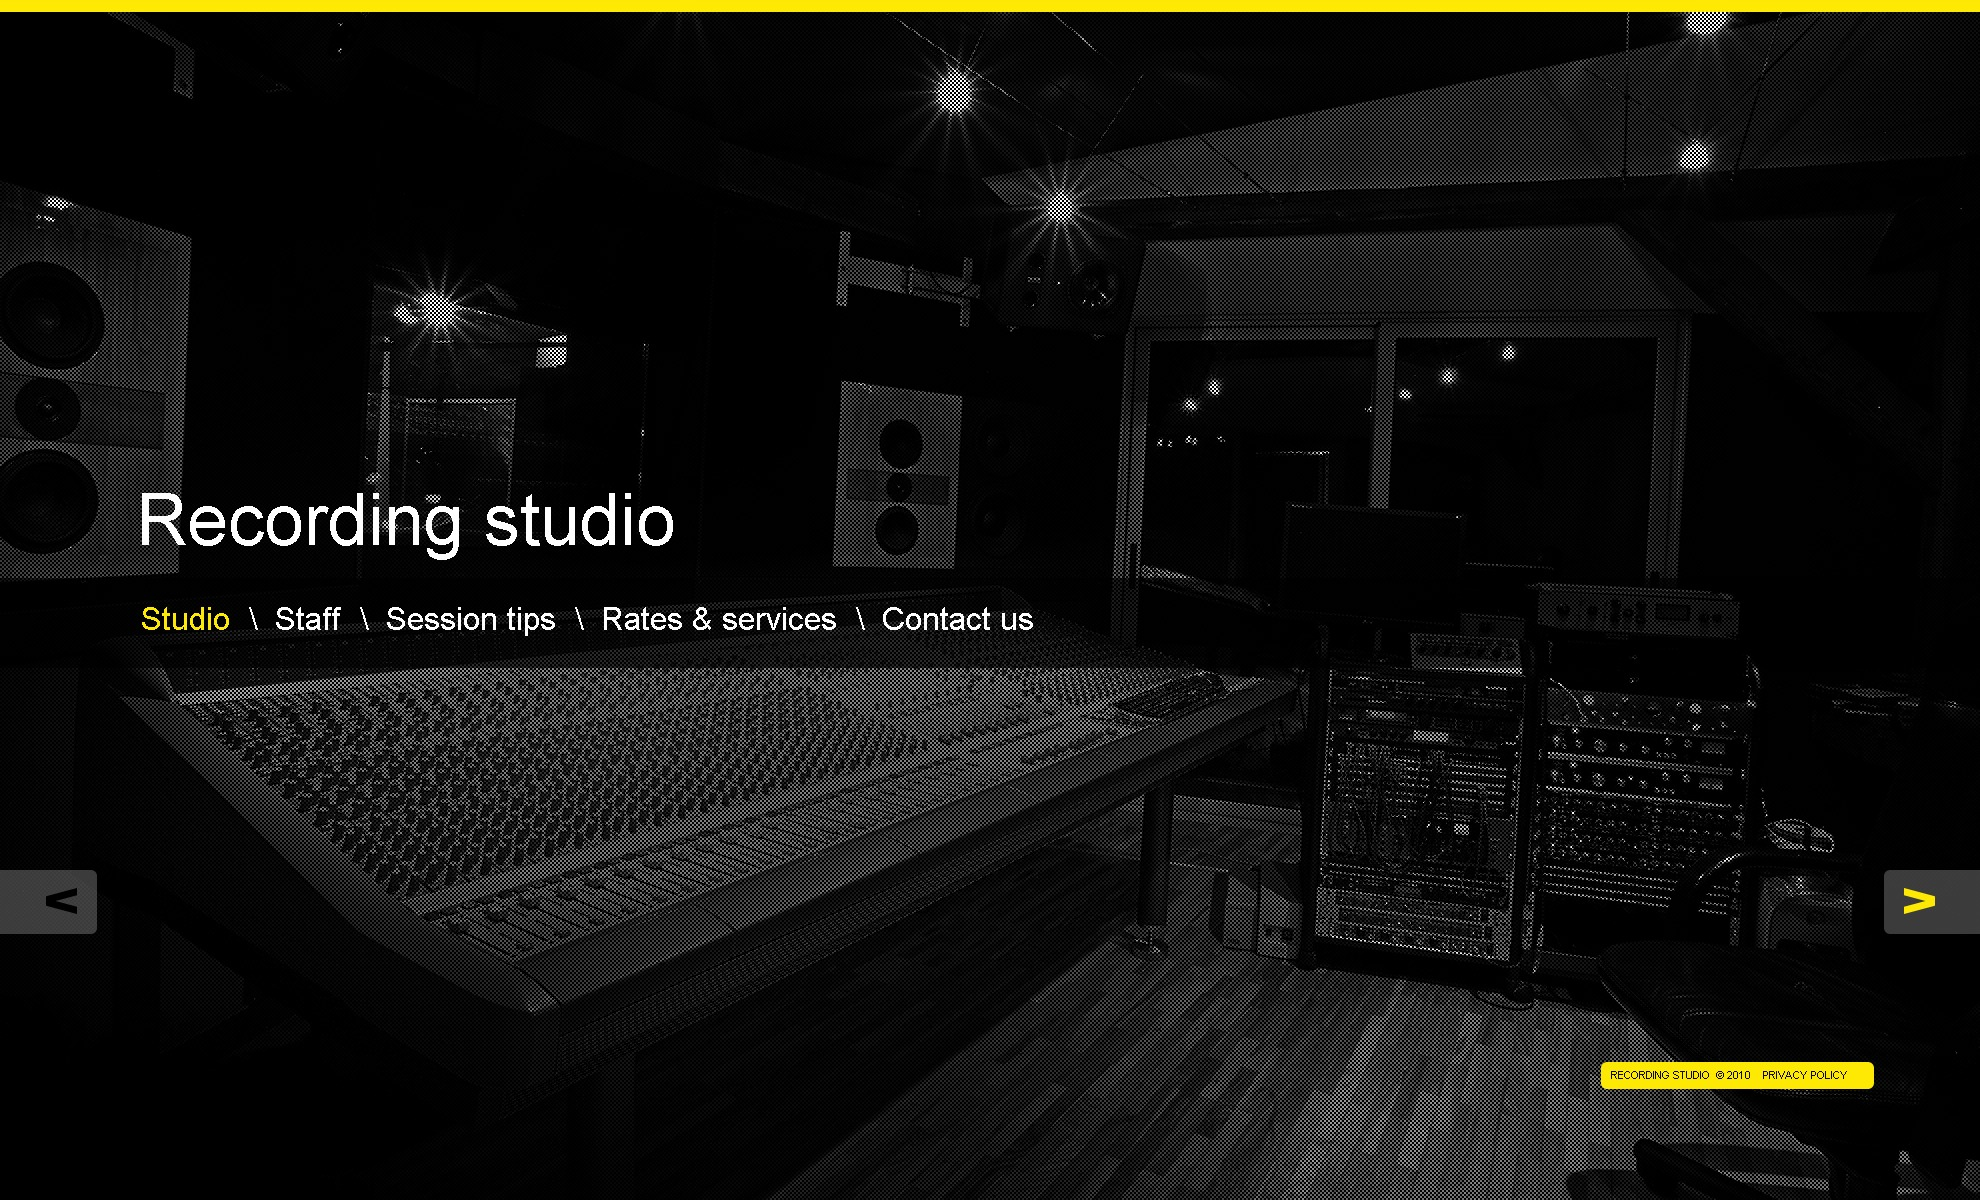 The Recording Studio PSD Design 54315, one of the best PSD templates of its kind (music, most popular, wide, jquery), also known as recording studio PSD template, records PSD template, records company PSD template, label PSD template, music PSD template, mp3 PSD template, video PSD template, ear-phones PSD template, sounds PSD template, listening PSD template, tune PSD template, melody PSD template, tempo PSD template, rhythm PSD template, releases PSD template, catalogue PSD template, singers PSD template, artists PSD template, single PSD template, song PSD template, album PSD template, bands PSD template, hit PSD template, parade PSD template, rate PSD template, world PSD template, charts PSD template, lists PSD template, recommendation PSD template, moderator PSD template, topics PSD template, media PSD template, intern and related with recording studio, records, records company, label, music, mp3, video, ear-phones, sounds, listening, tune, melody, tempo, rhythm, releases, catalogue, singers, artists, single, song, album, bands, hit, parade, rate, world, charts, lists, recommendation, moderator, topics, media, intern, etc.